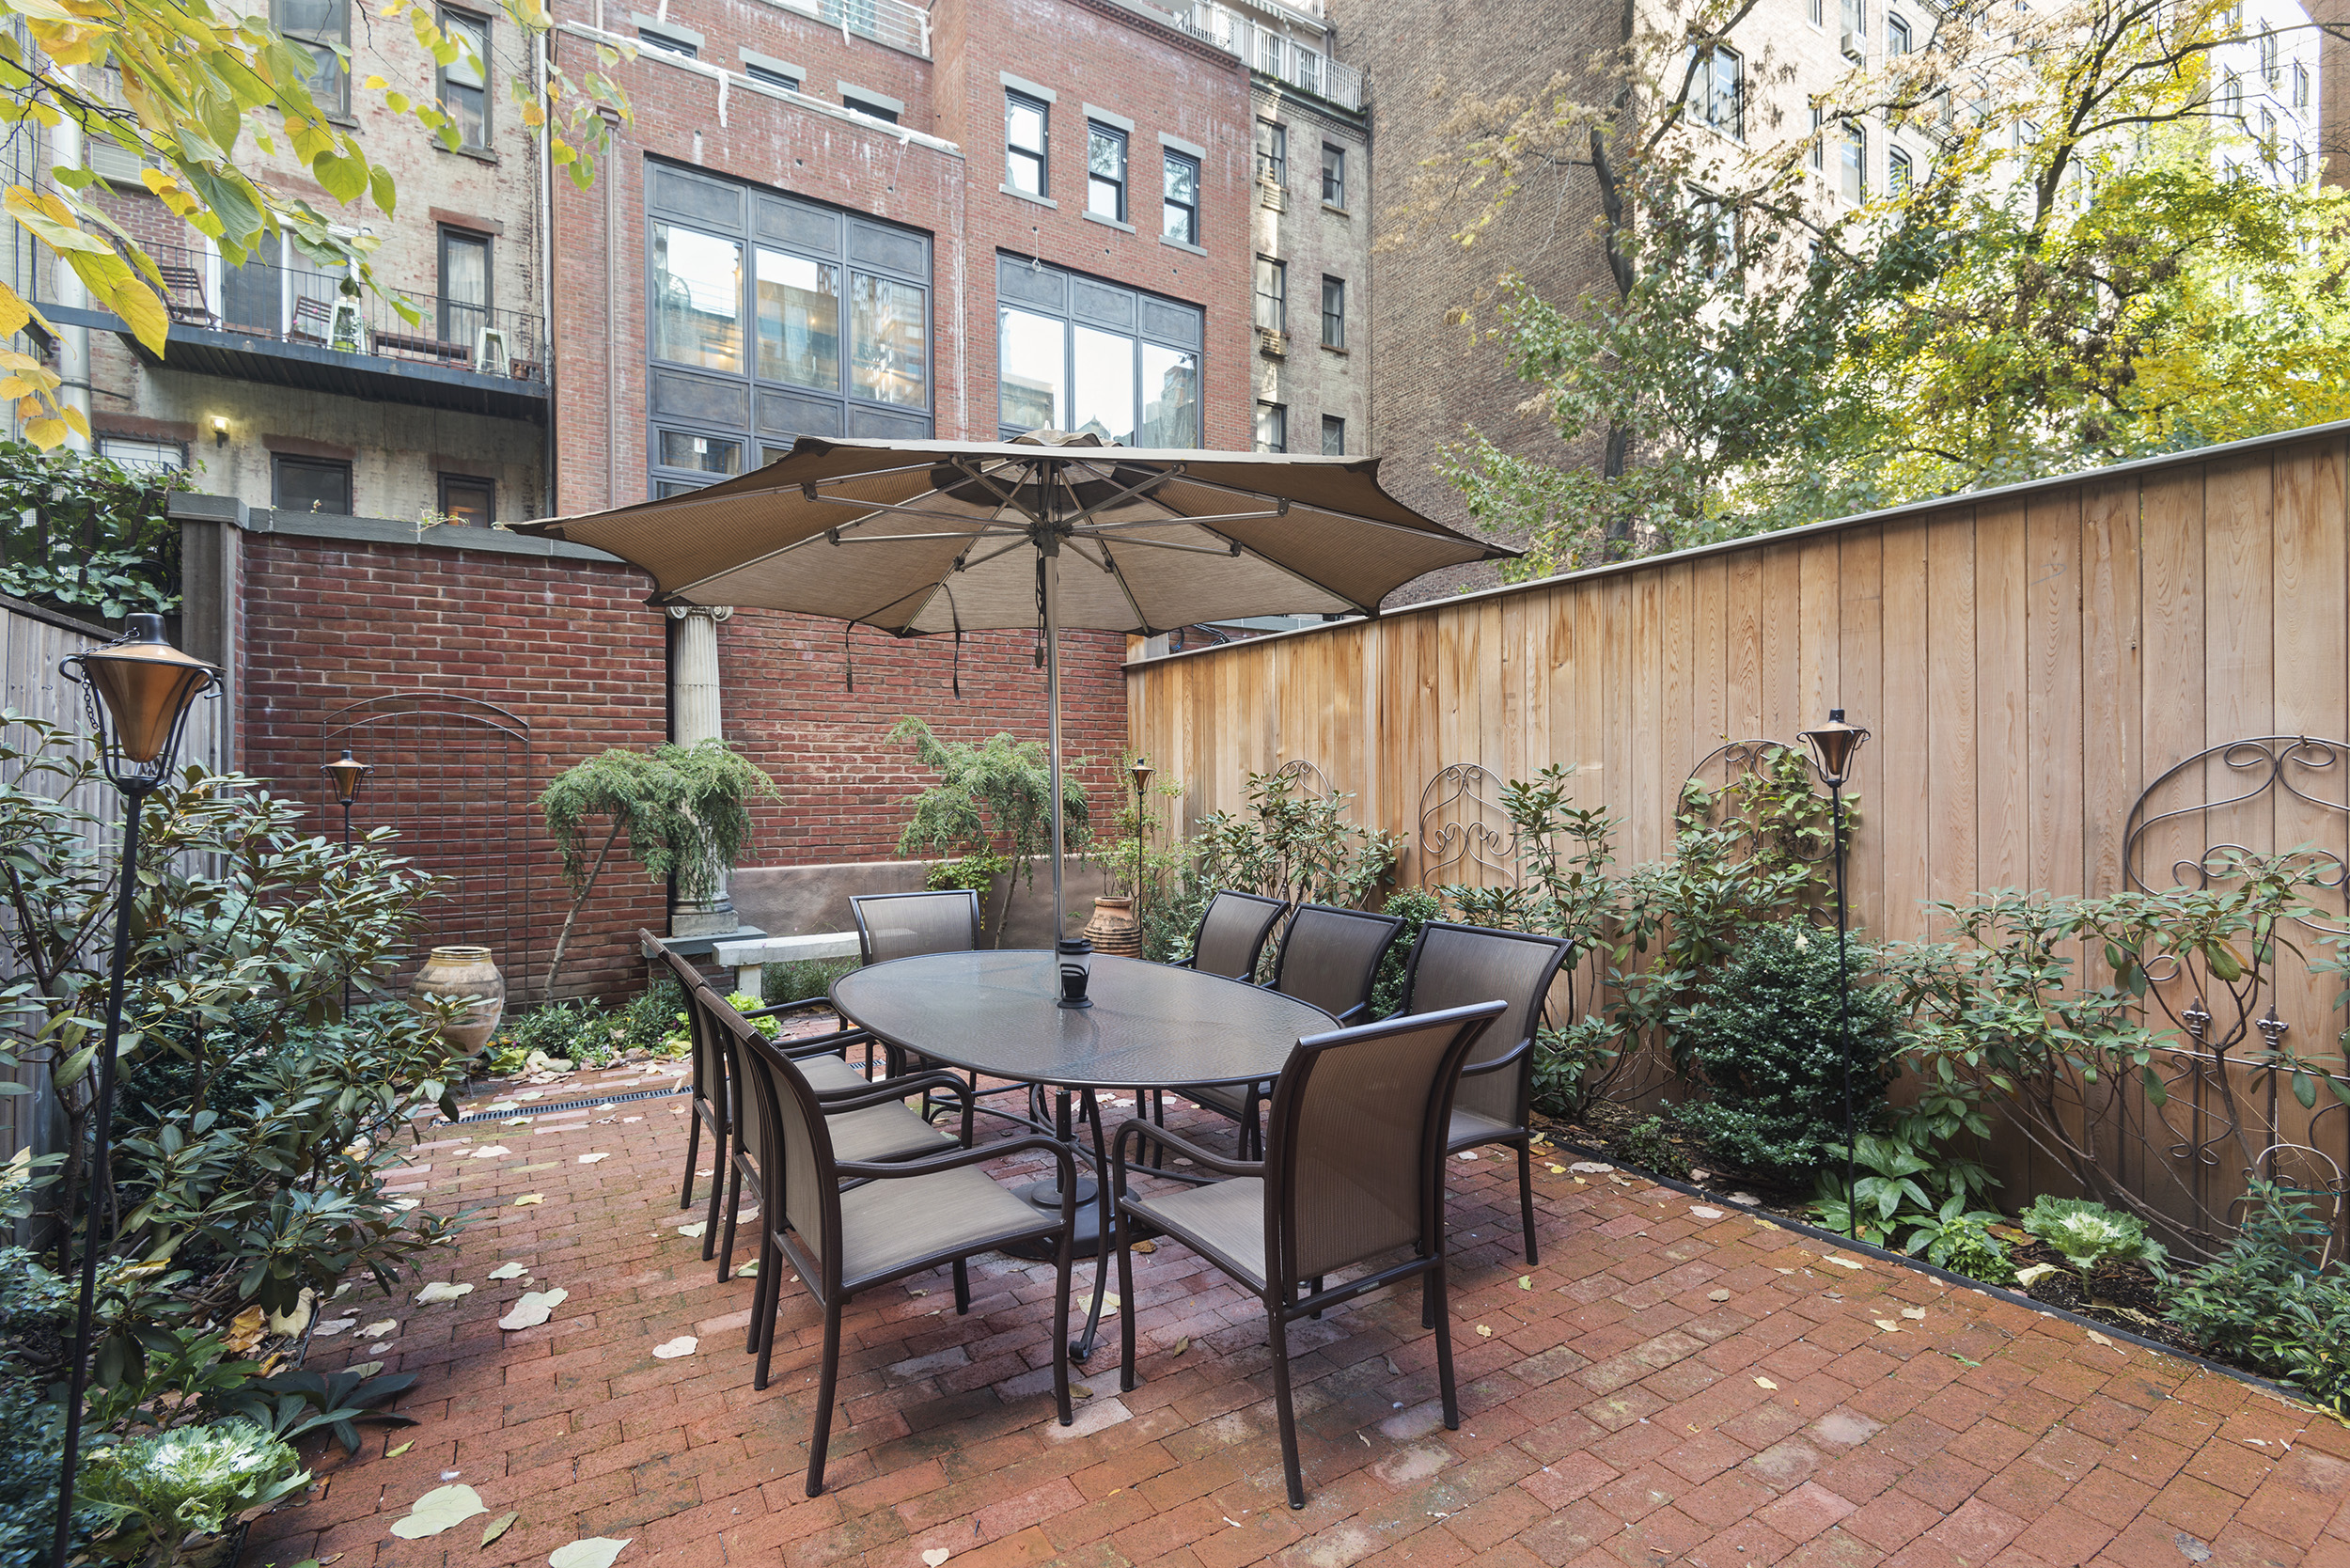 131 West 69th Street: Luxury Upper West Side townhouse private garden